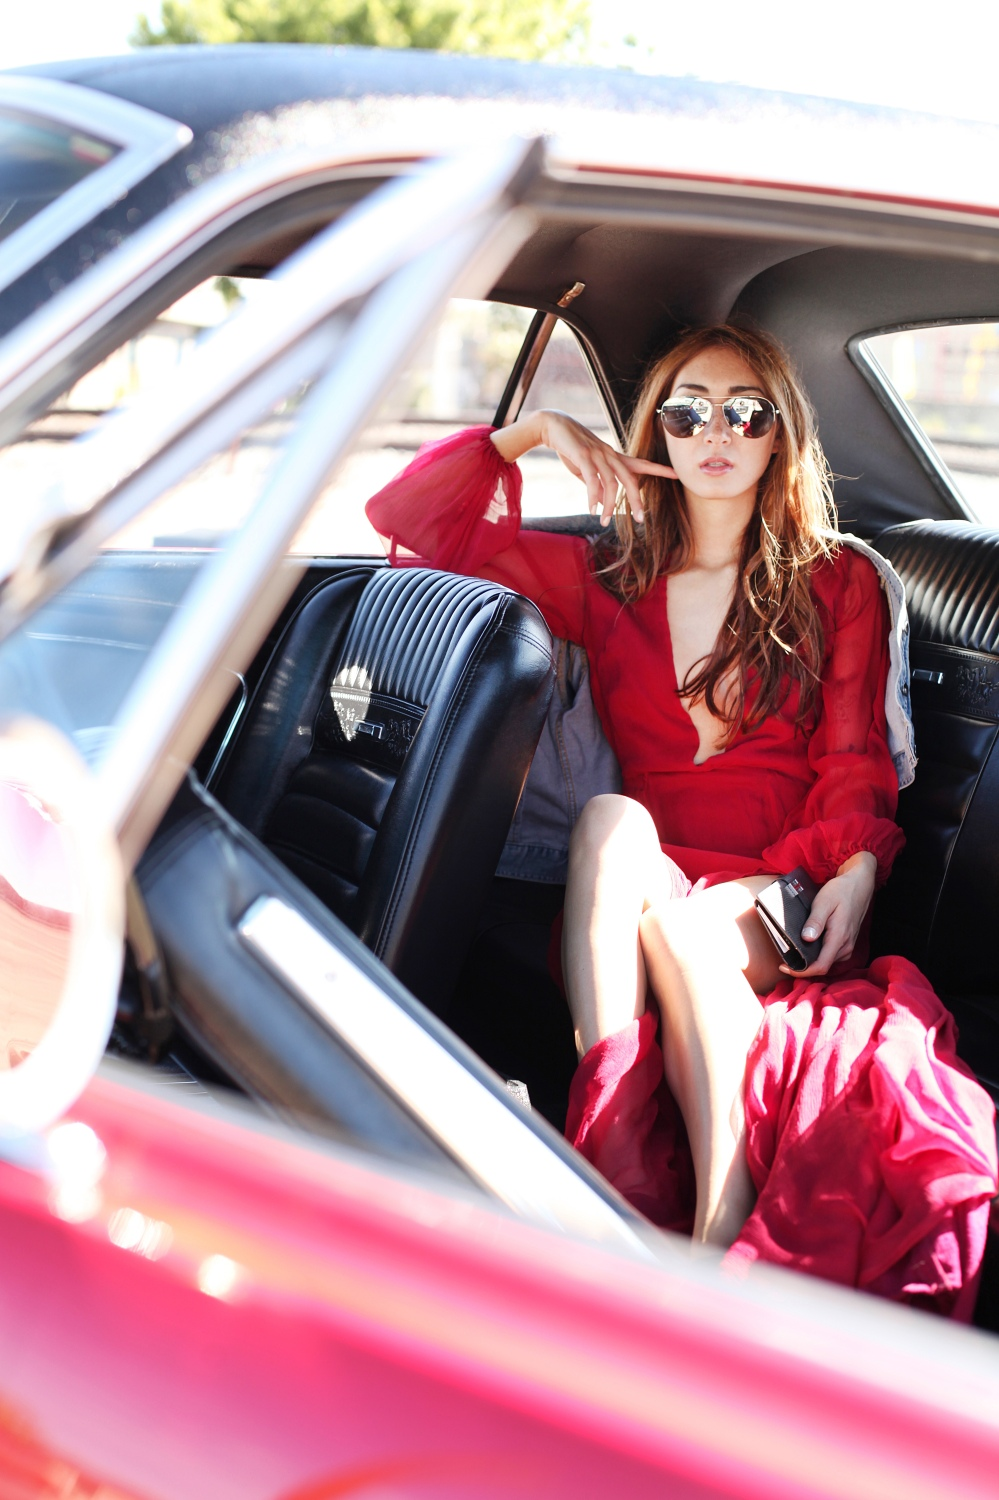 Fast and Furious in Alyssa Nicole Red Gown, Hermès Clutch, Michael Kors Aviator Sunglasses